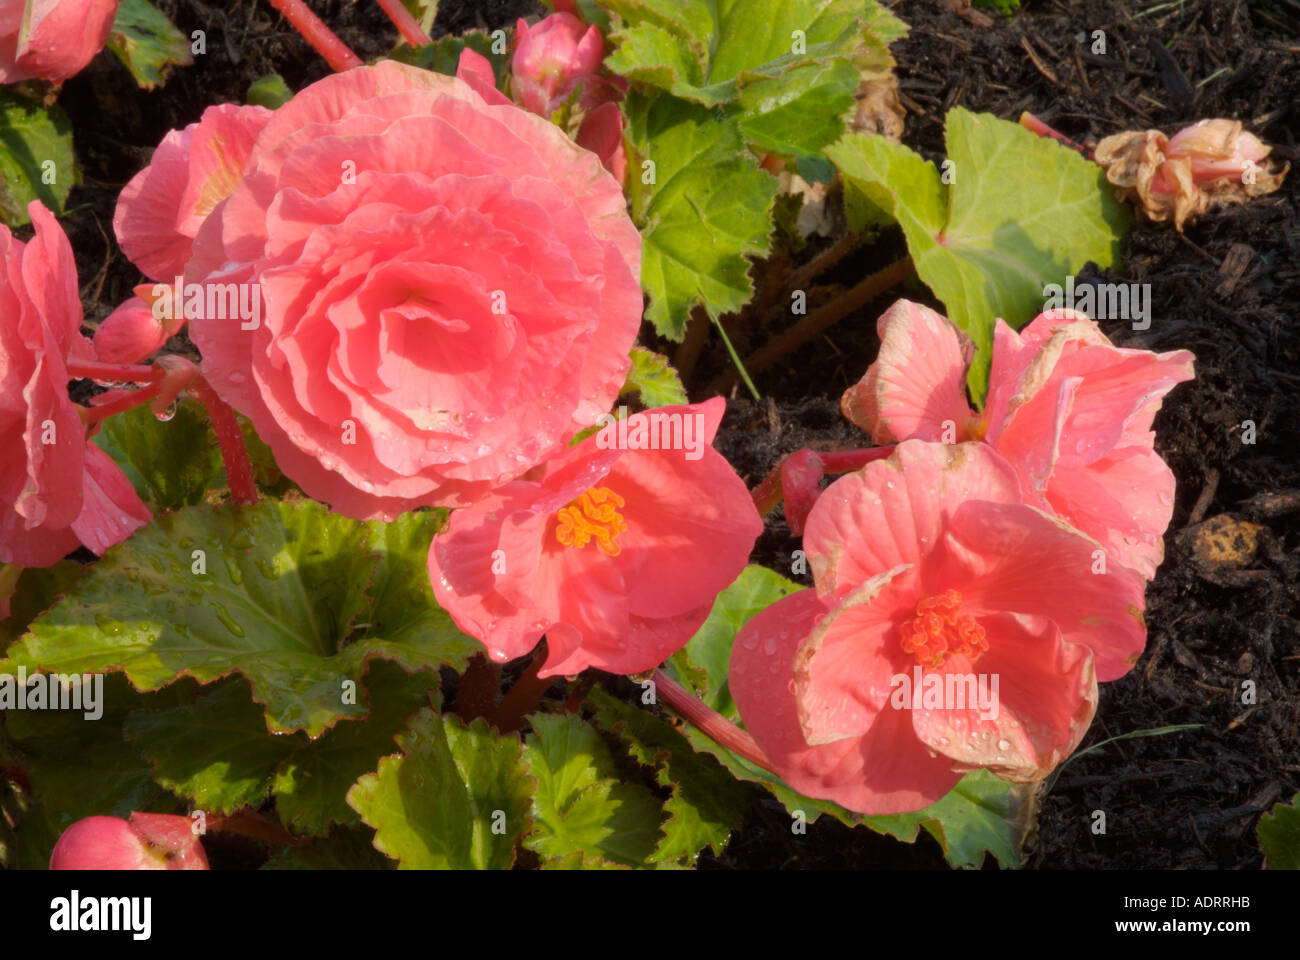 Plants for spring and summer - Stock Photo Flowers Bloom Pretty Pedals Gardens Garden Grow Summer Spring Colors Plant Plants Environment Elegant Natural